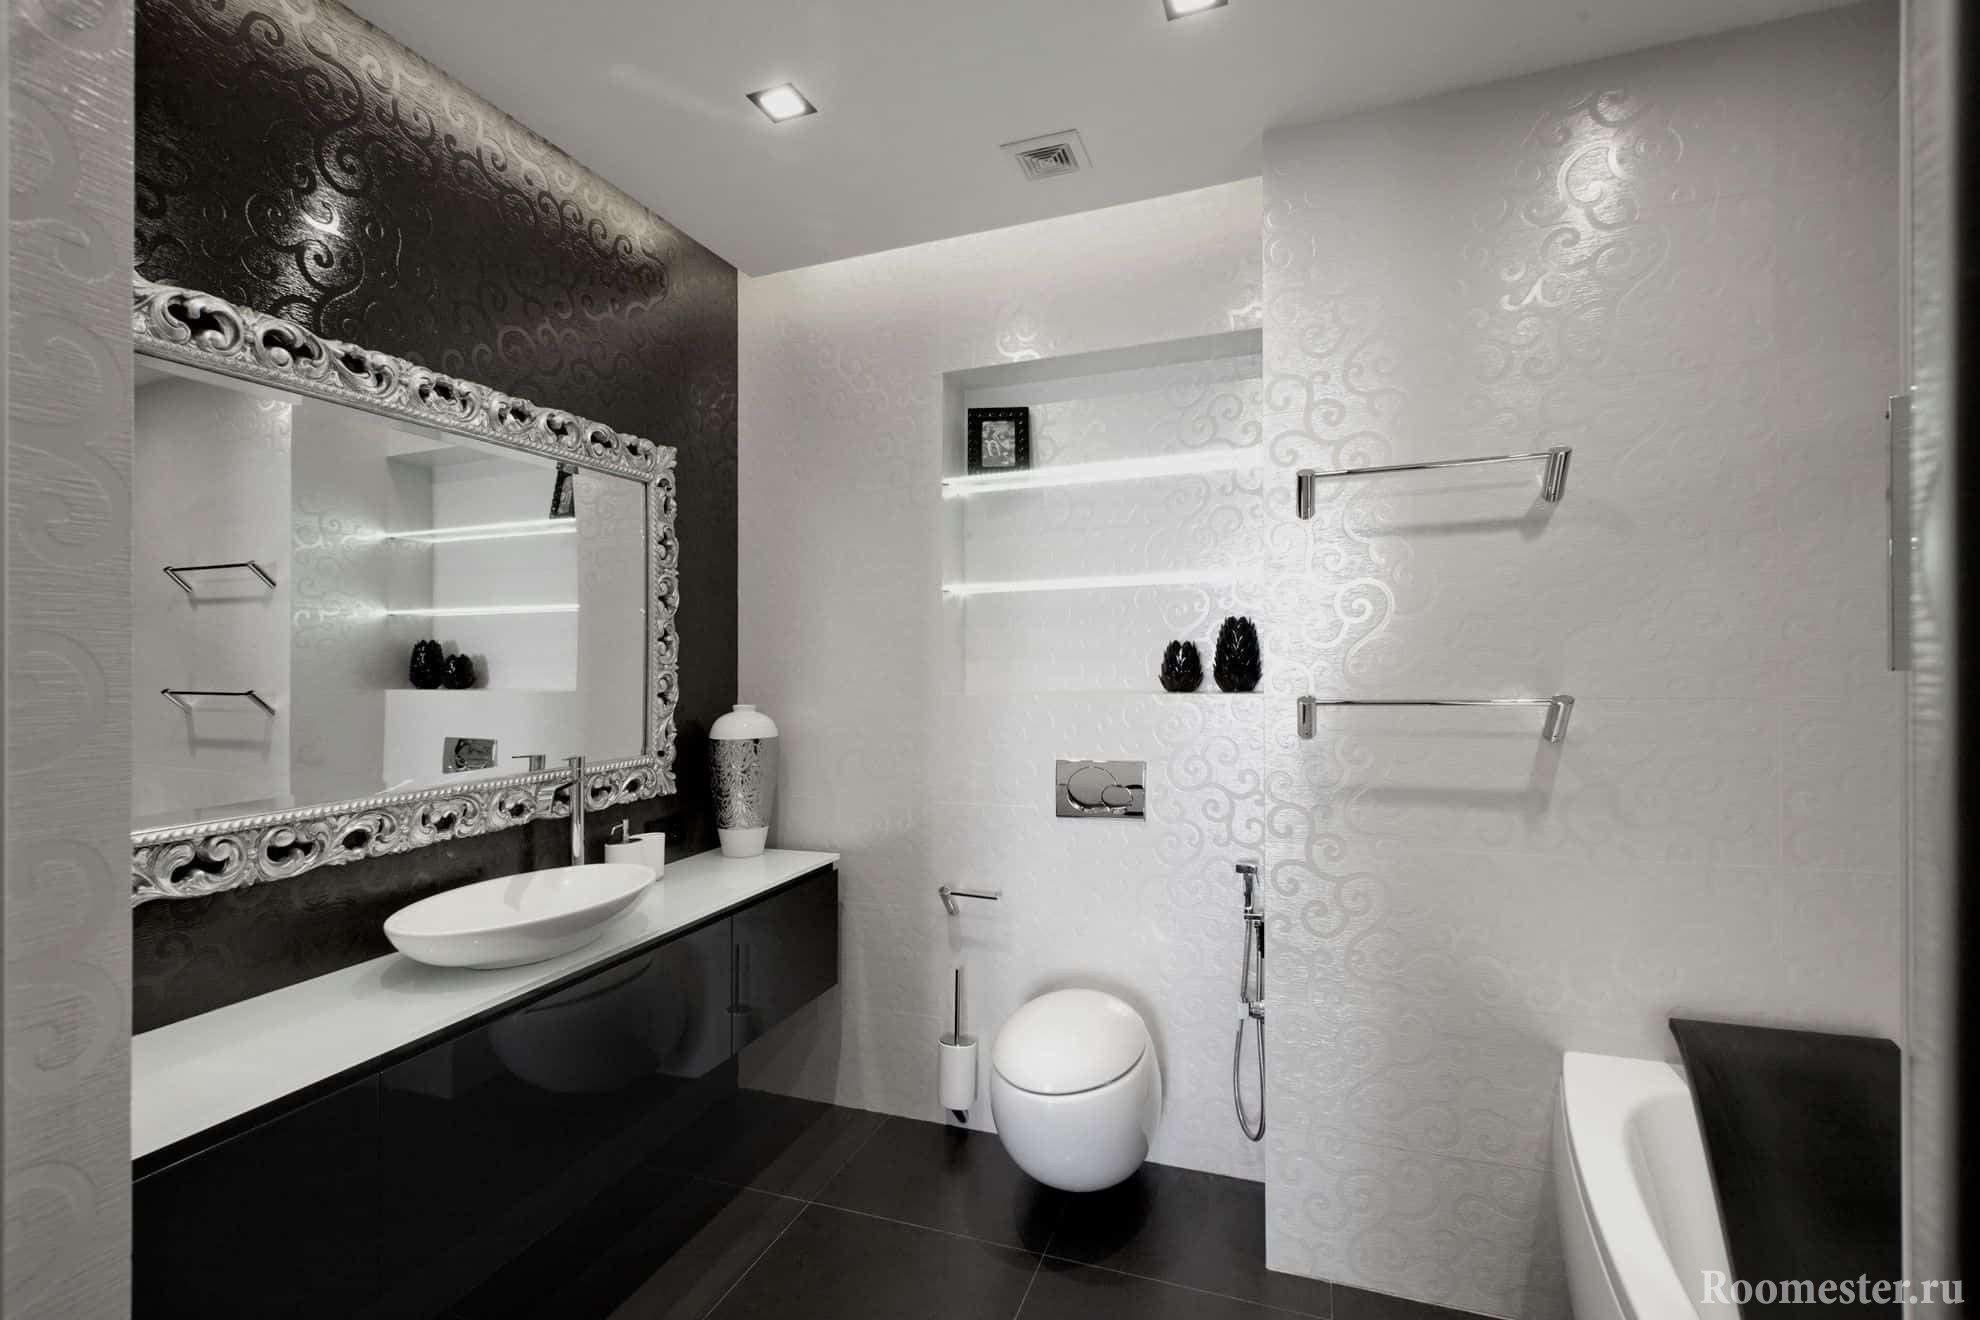 Black and white bathroom with WC